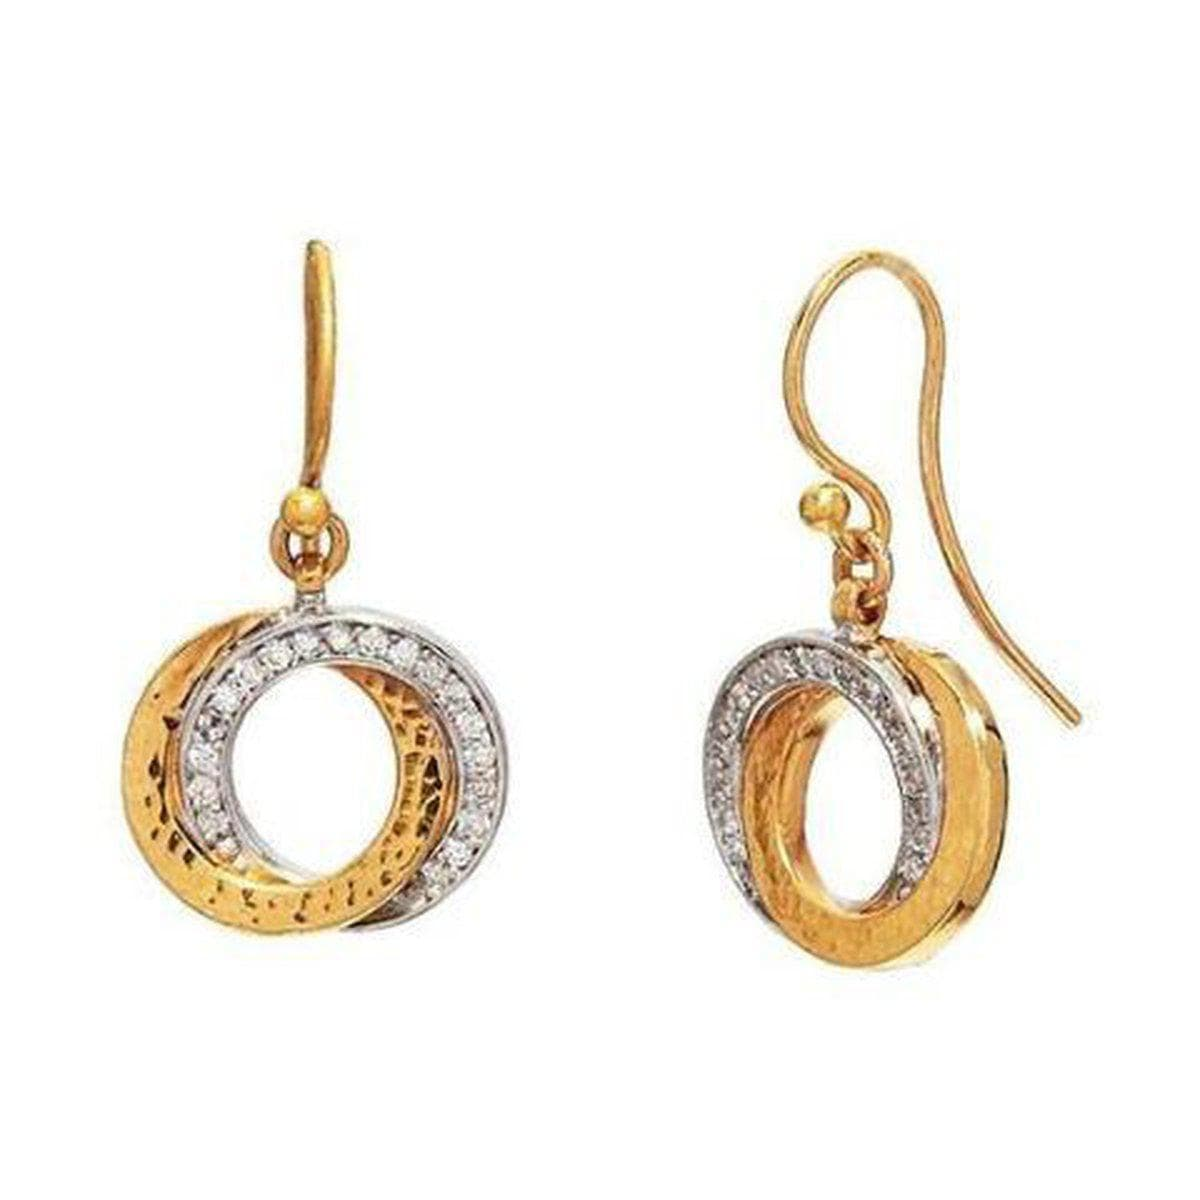 Duet 22K Gold White Diamond Earrings - LTE-INT-2RD-H-19DI